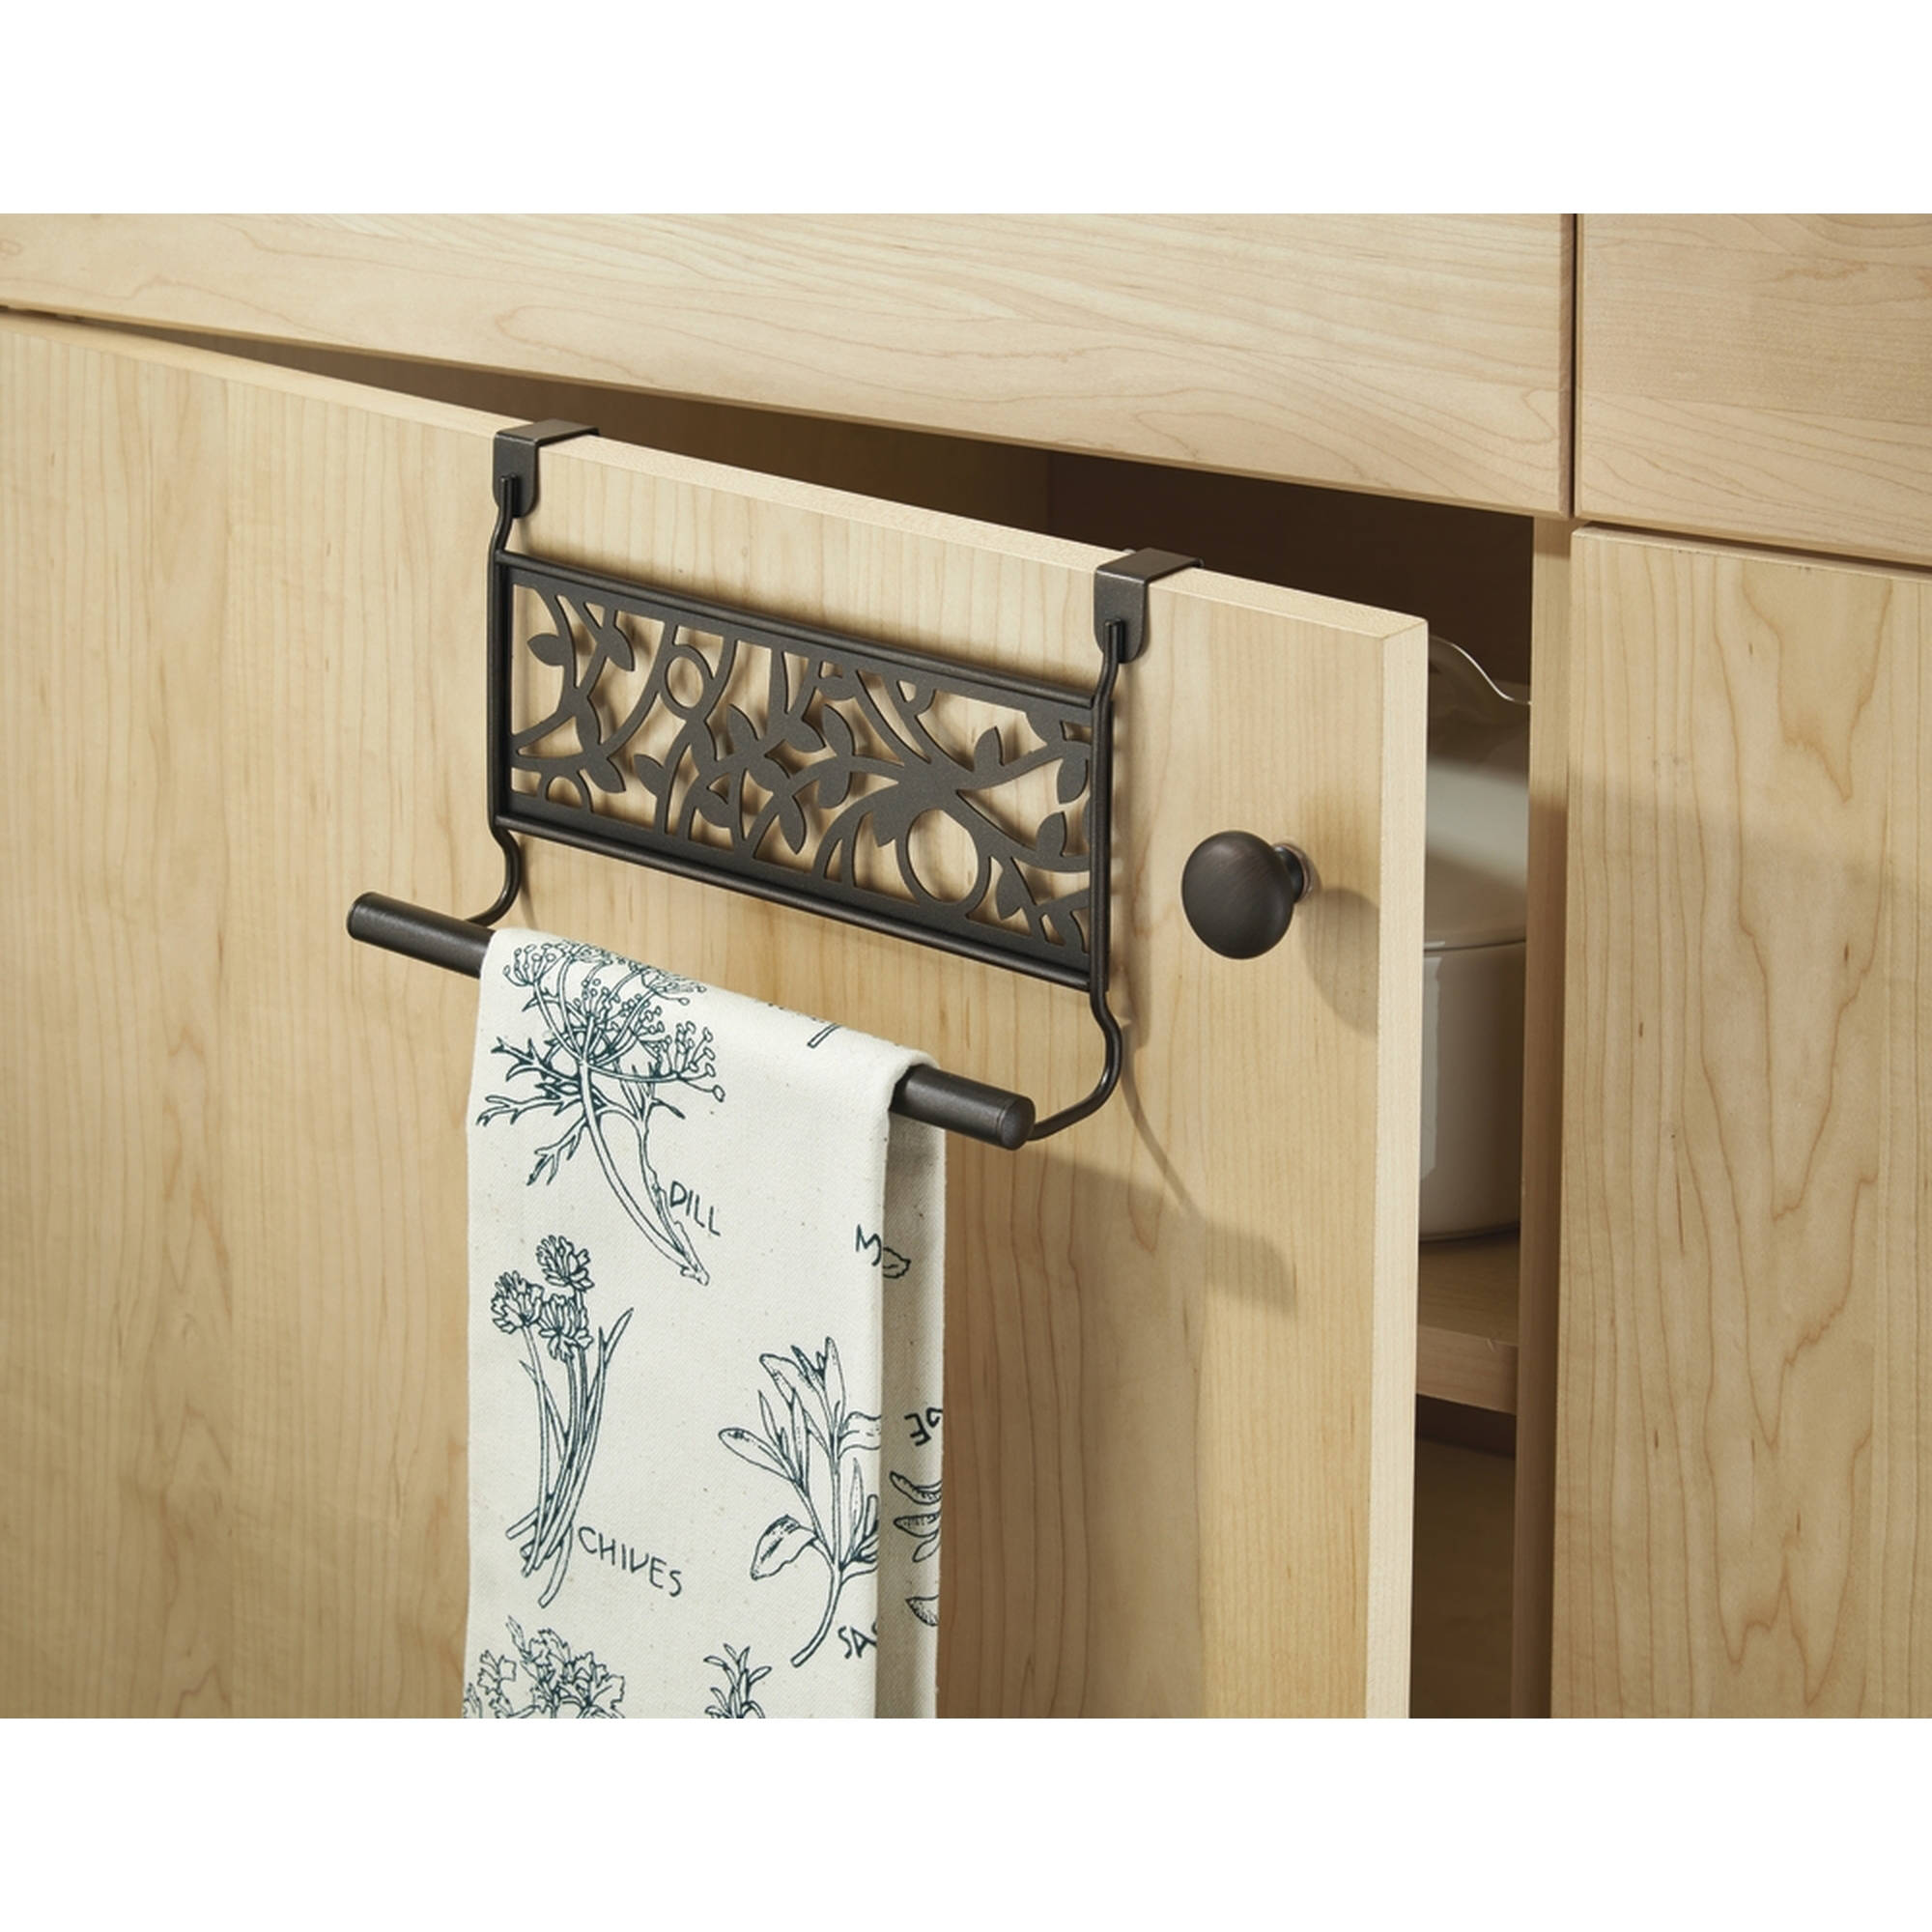 InterDesign Vine Over-the-Cabinet Kitchen Dish Towel Bar Holder, Bronze